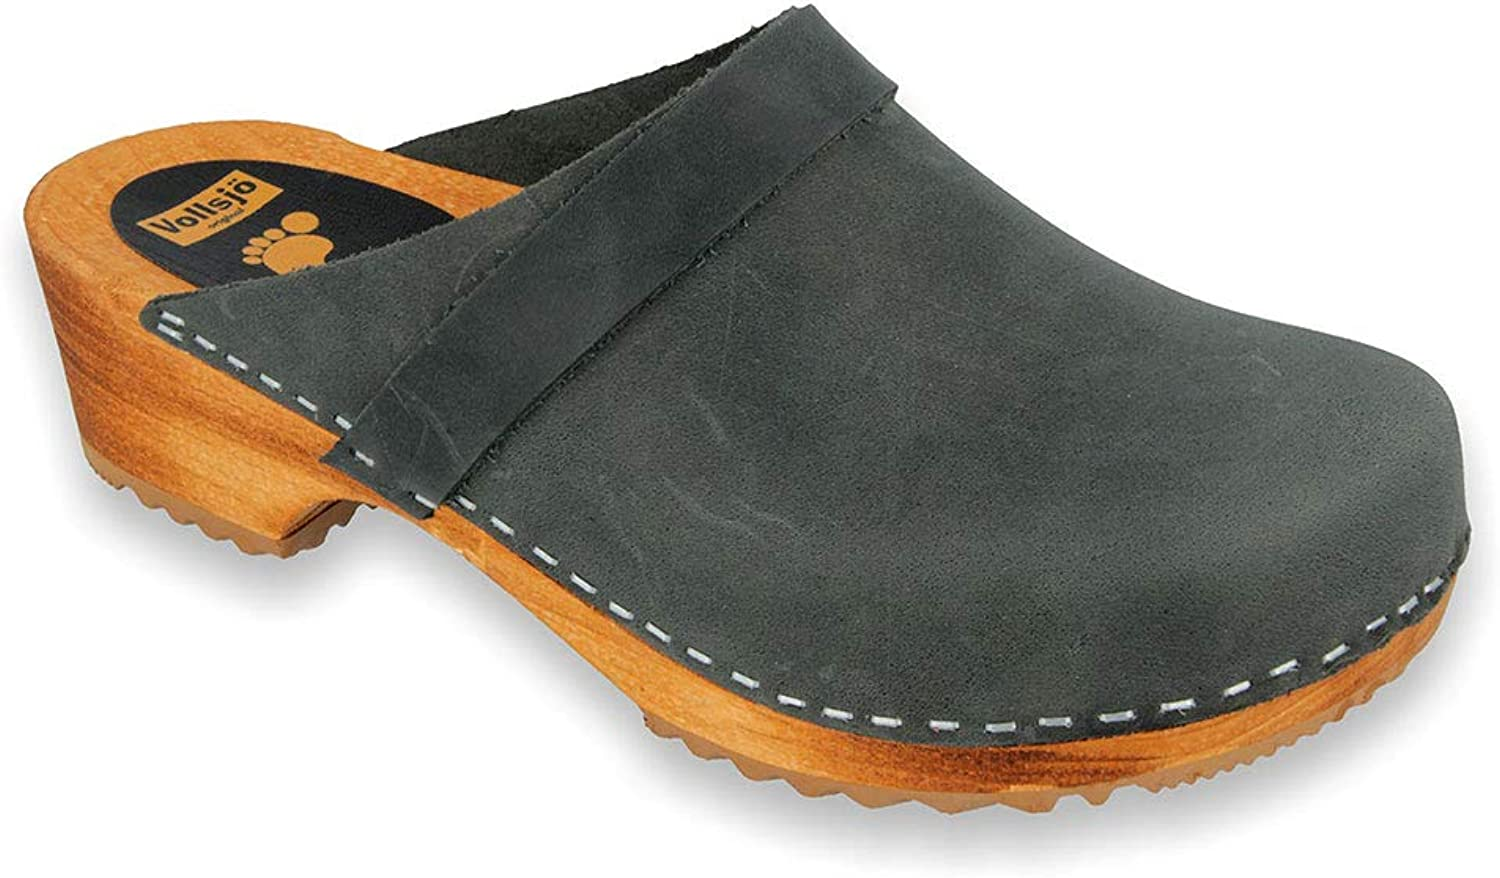 Genuine Leather Wooden Clogs Made in EU